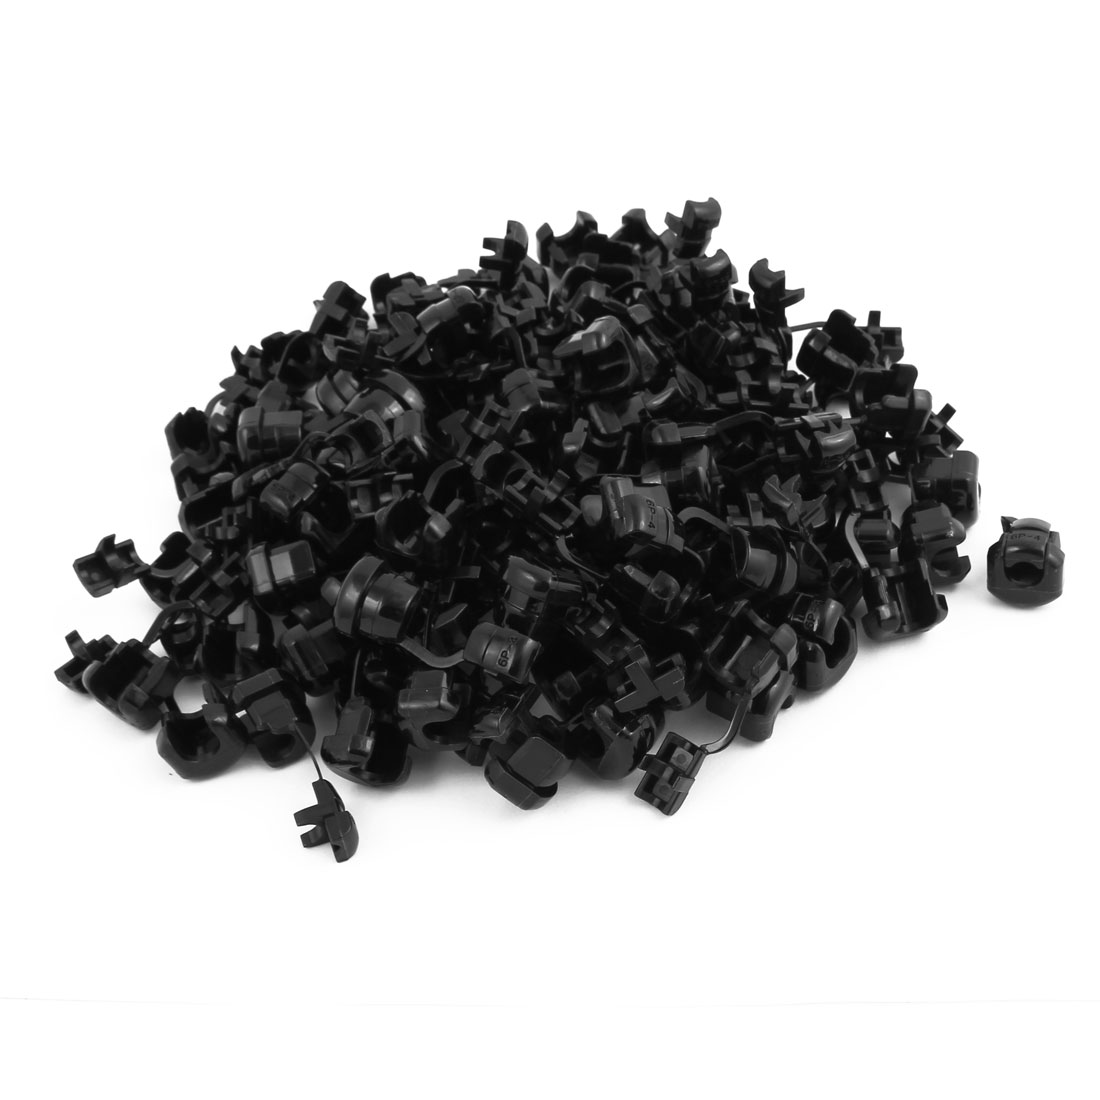 100Pcs 6P-4 Round Cable Wire Strain Relief Bush Grommet 14mm Diameter Black